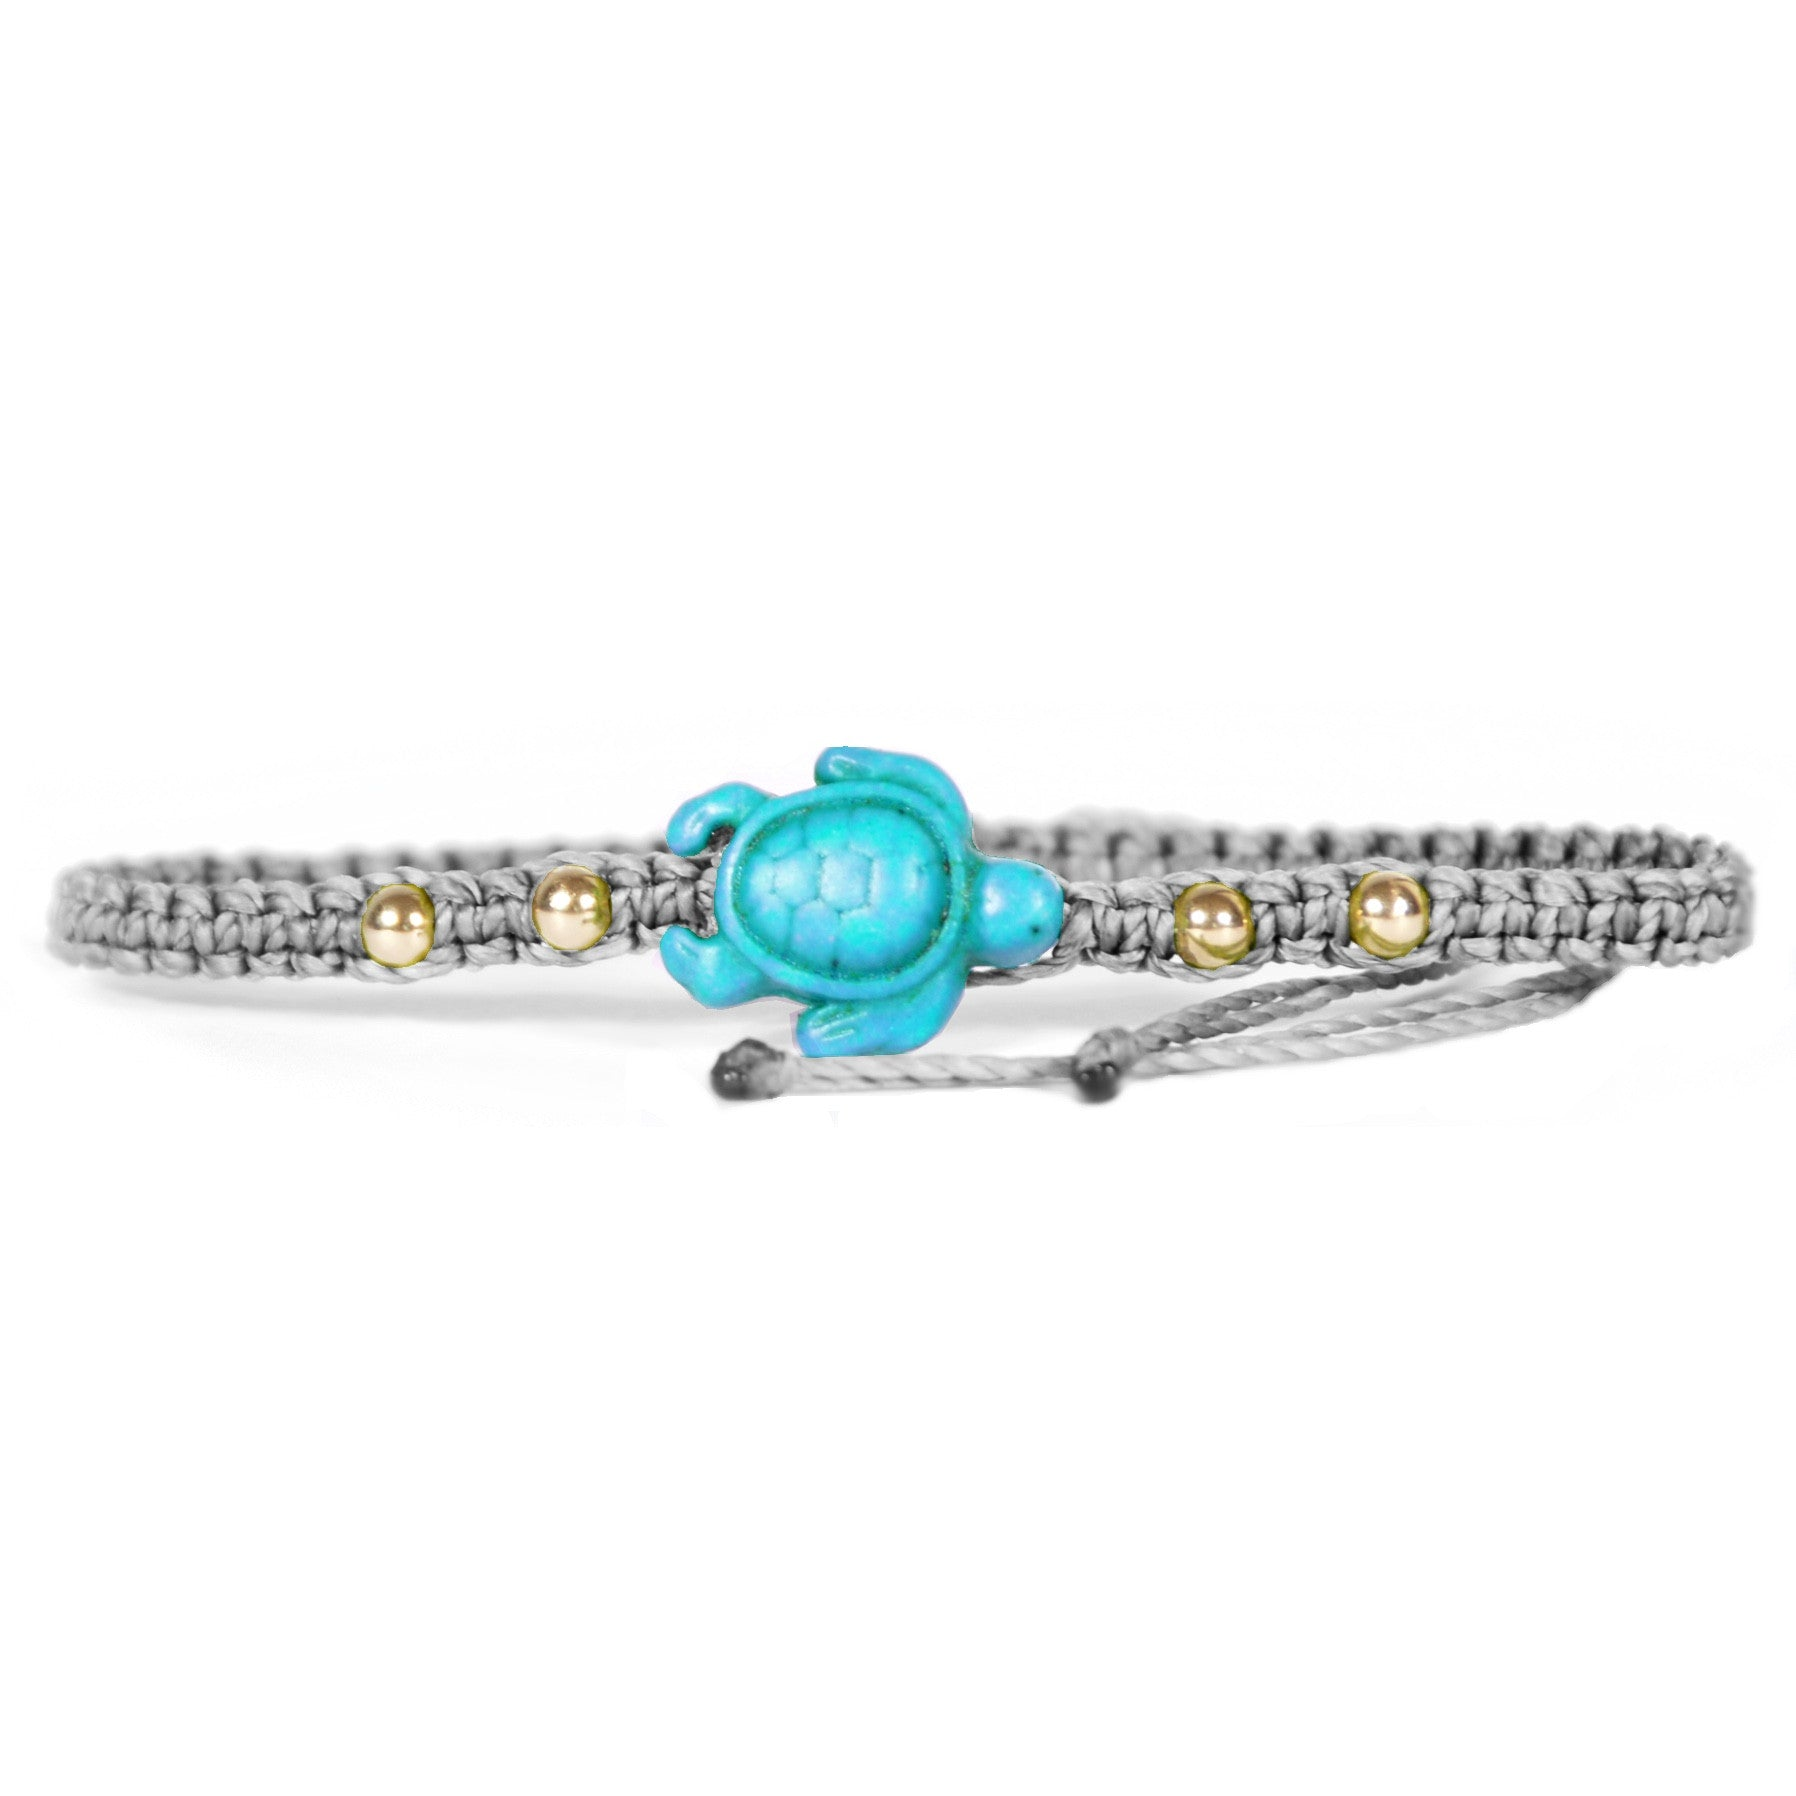 products divinityla sea bracelets the conservancy turtle bracelet